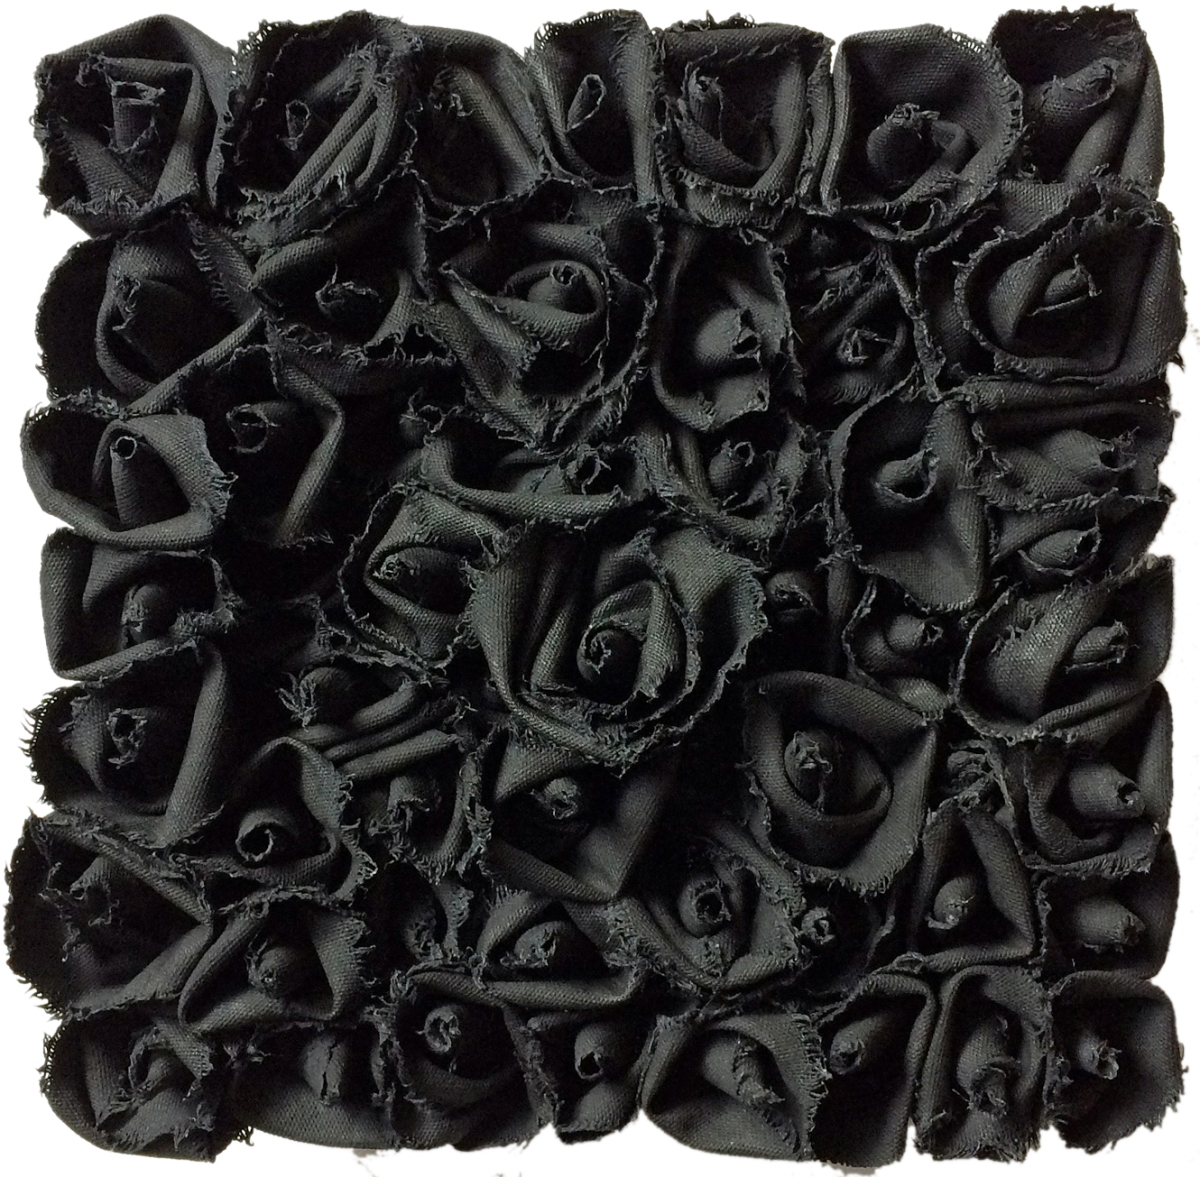 Andrea Clay Cook, Garden of Roses #86 Onyx, 2017